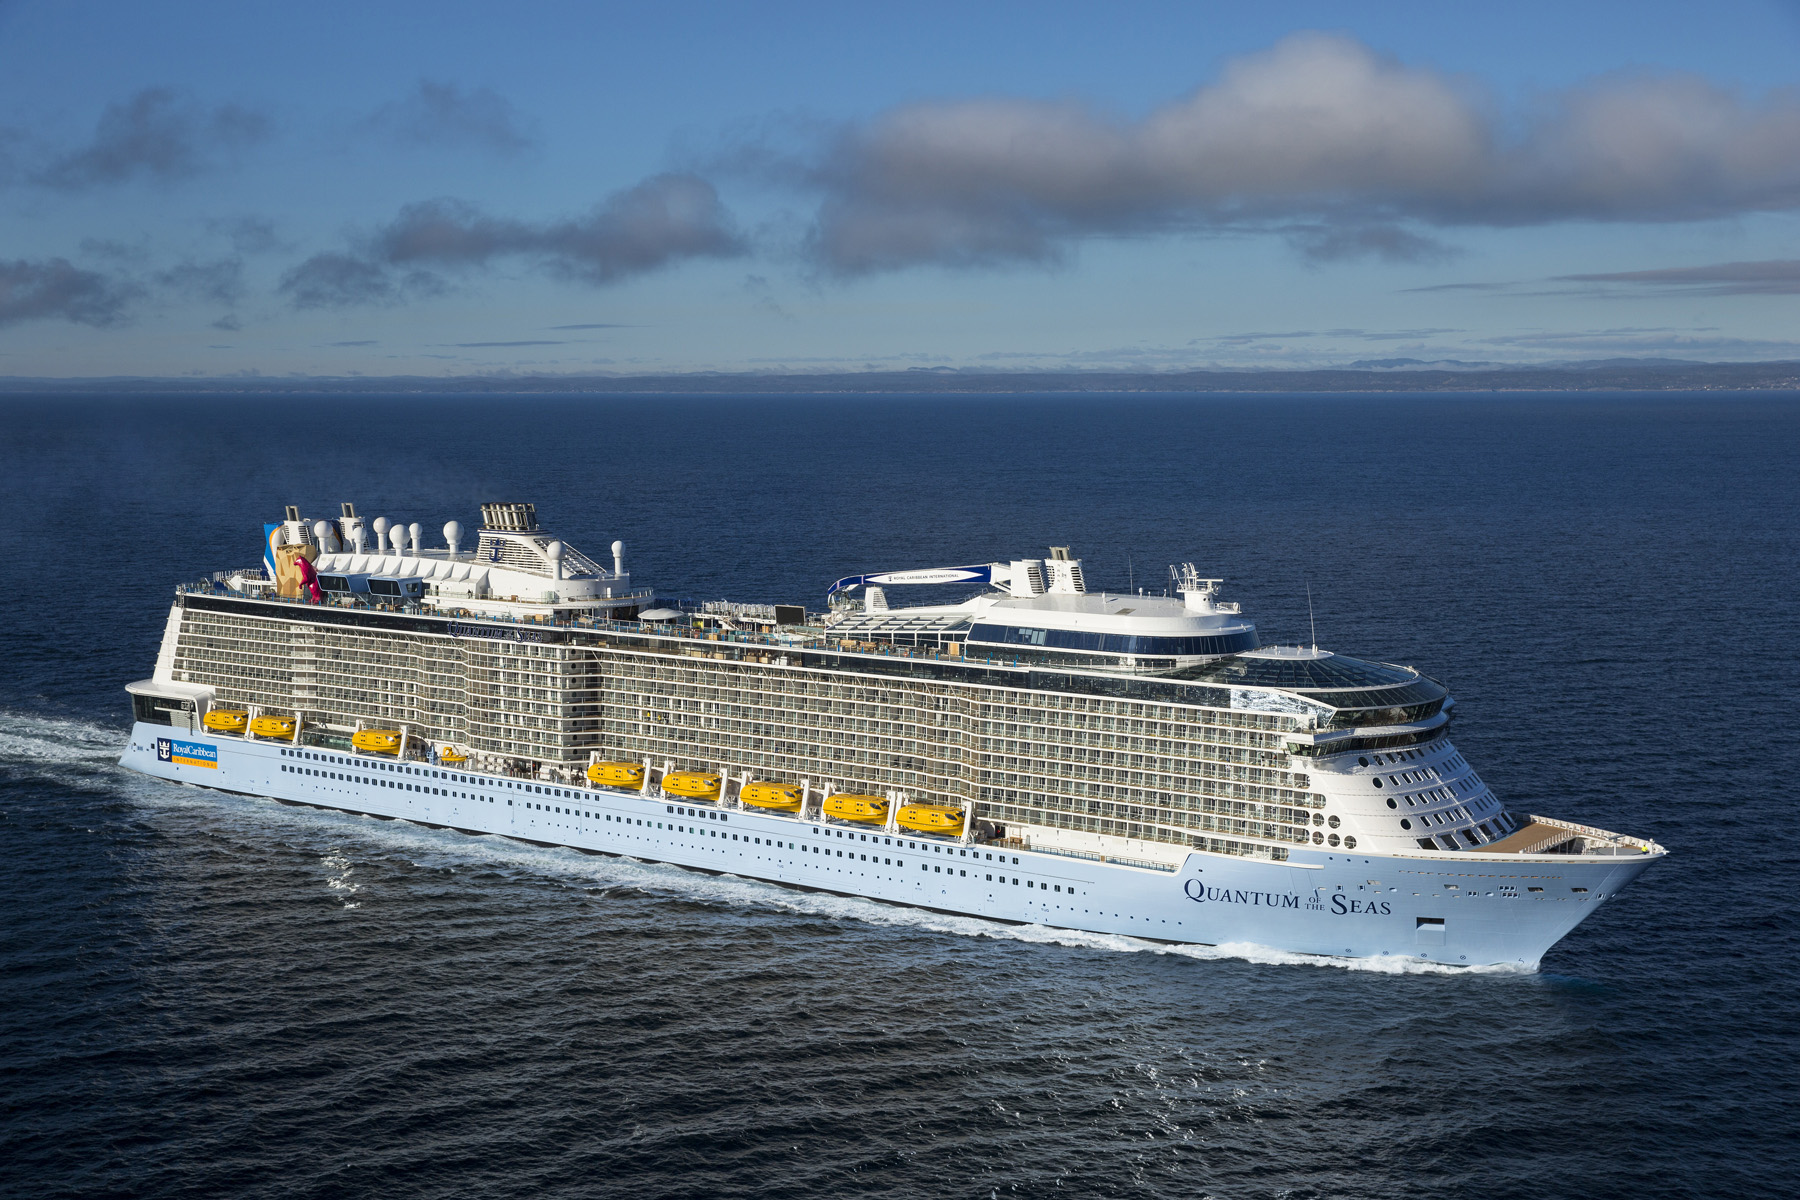 Royal Caribbean's Quantum of the Seas, the world's first smartship, has arrived to the New York area bringing with her a wave a unprecedented firsts at sea